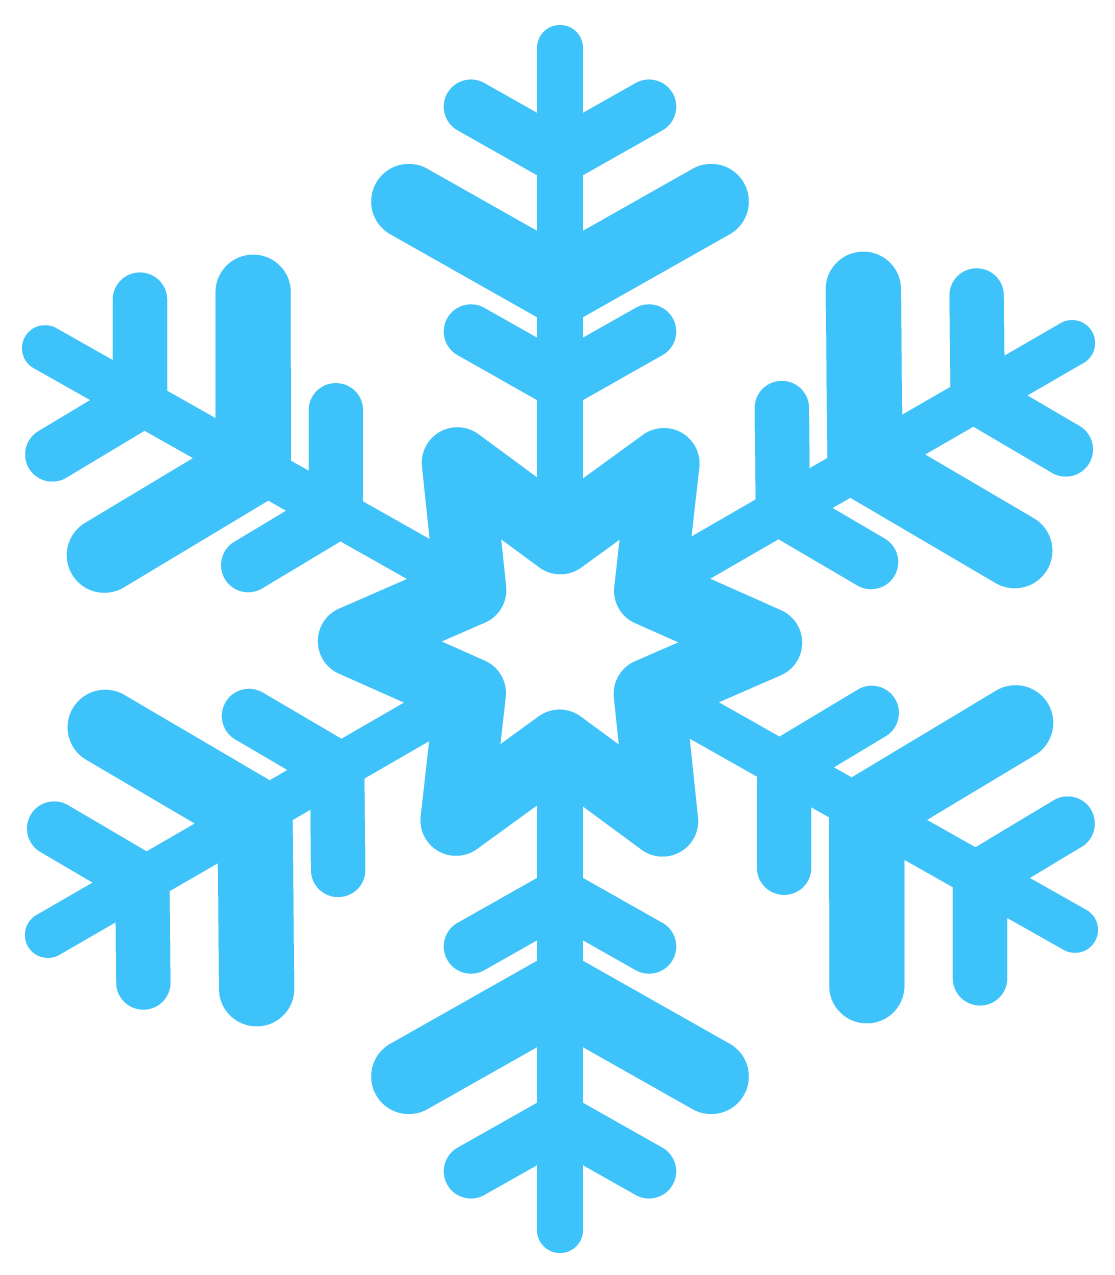 Blue snowflake border clipart svg black and white library Snowflakes Transparent PNG Pictures - Free Icons and PNG Backgrounds svg black and white library